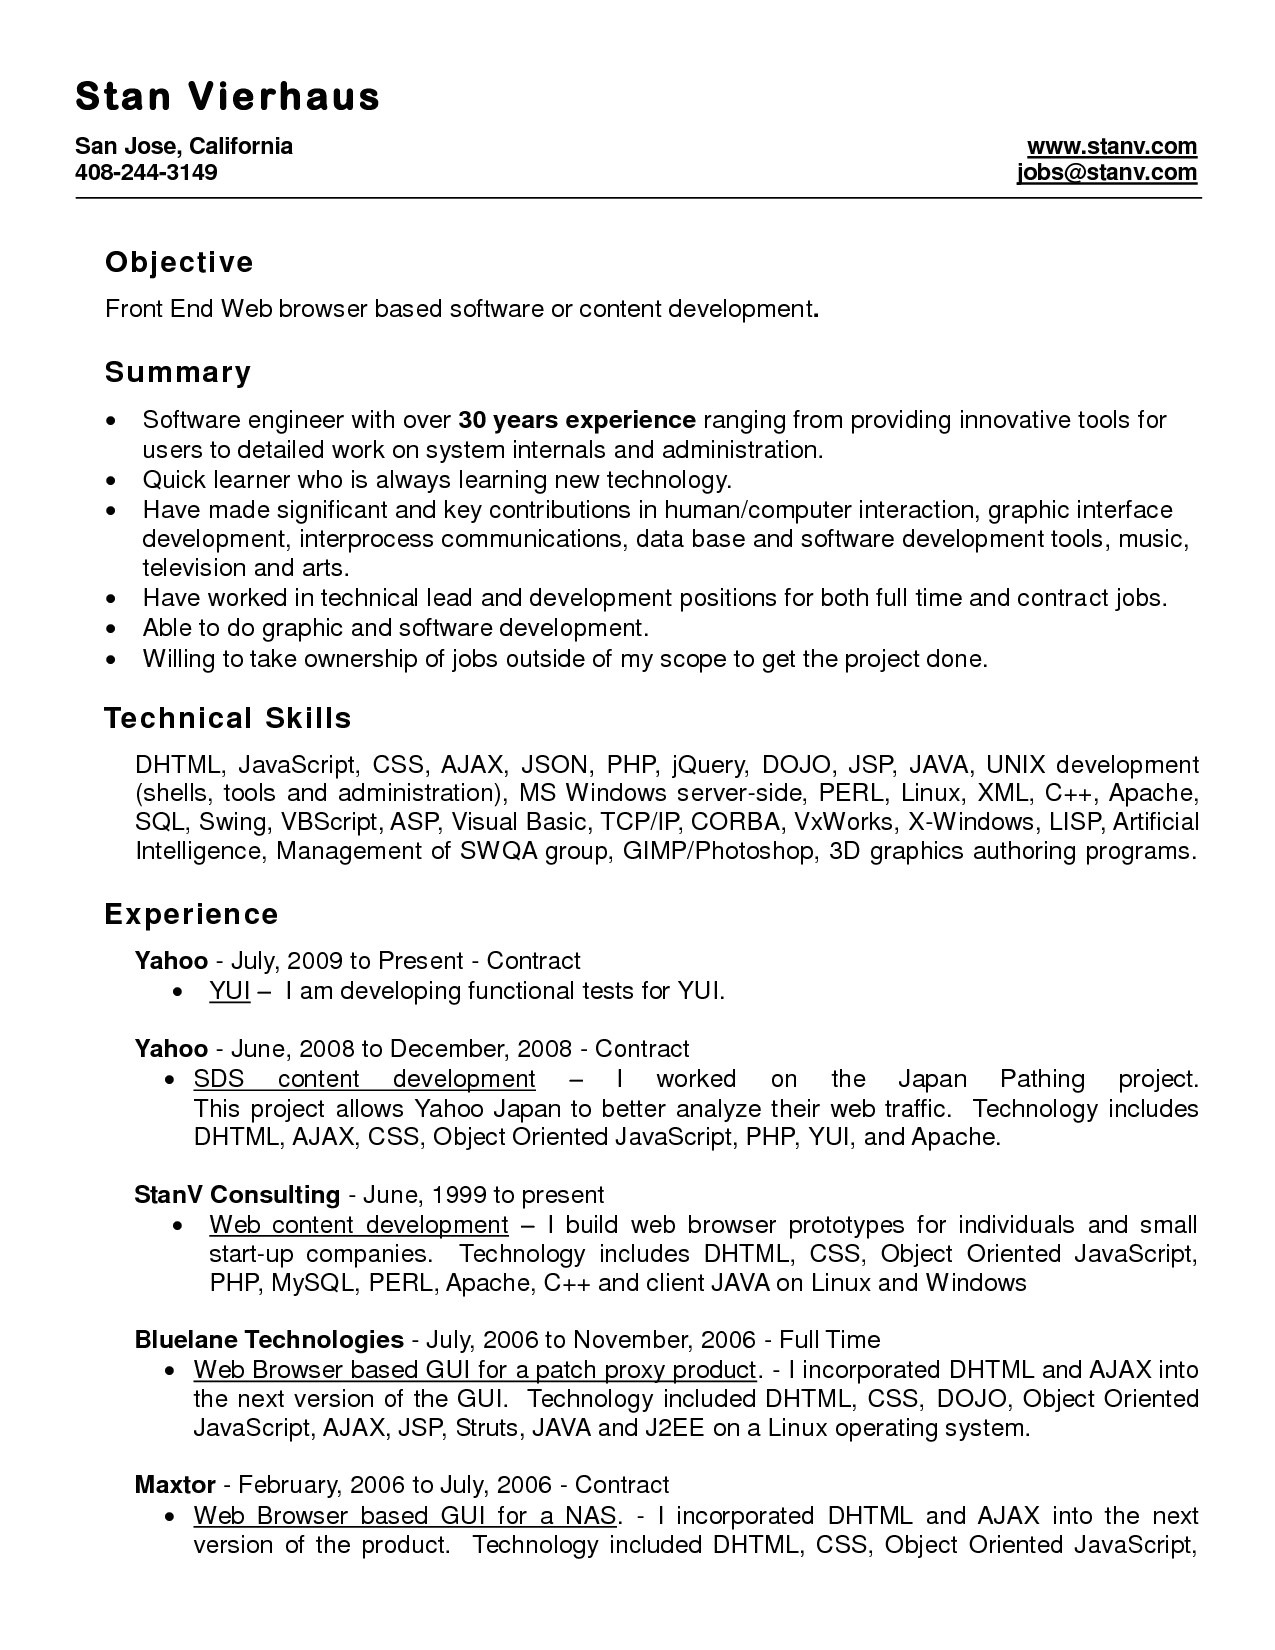 resume examples how to find templates on microsoft word get 2007 office 2010 template pics ms format document